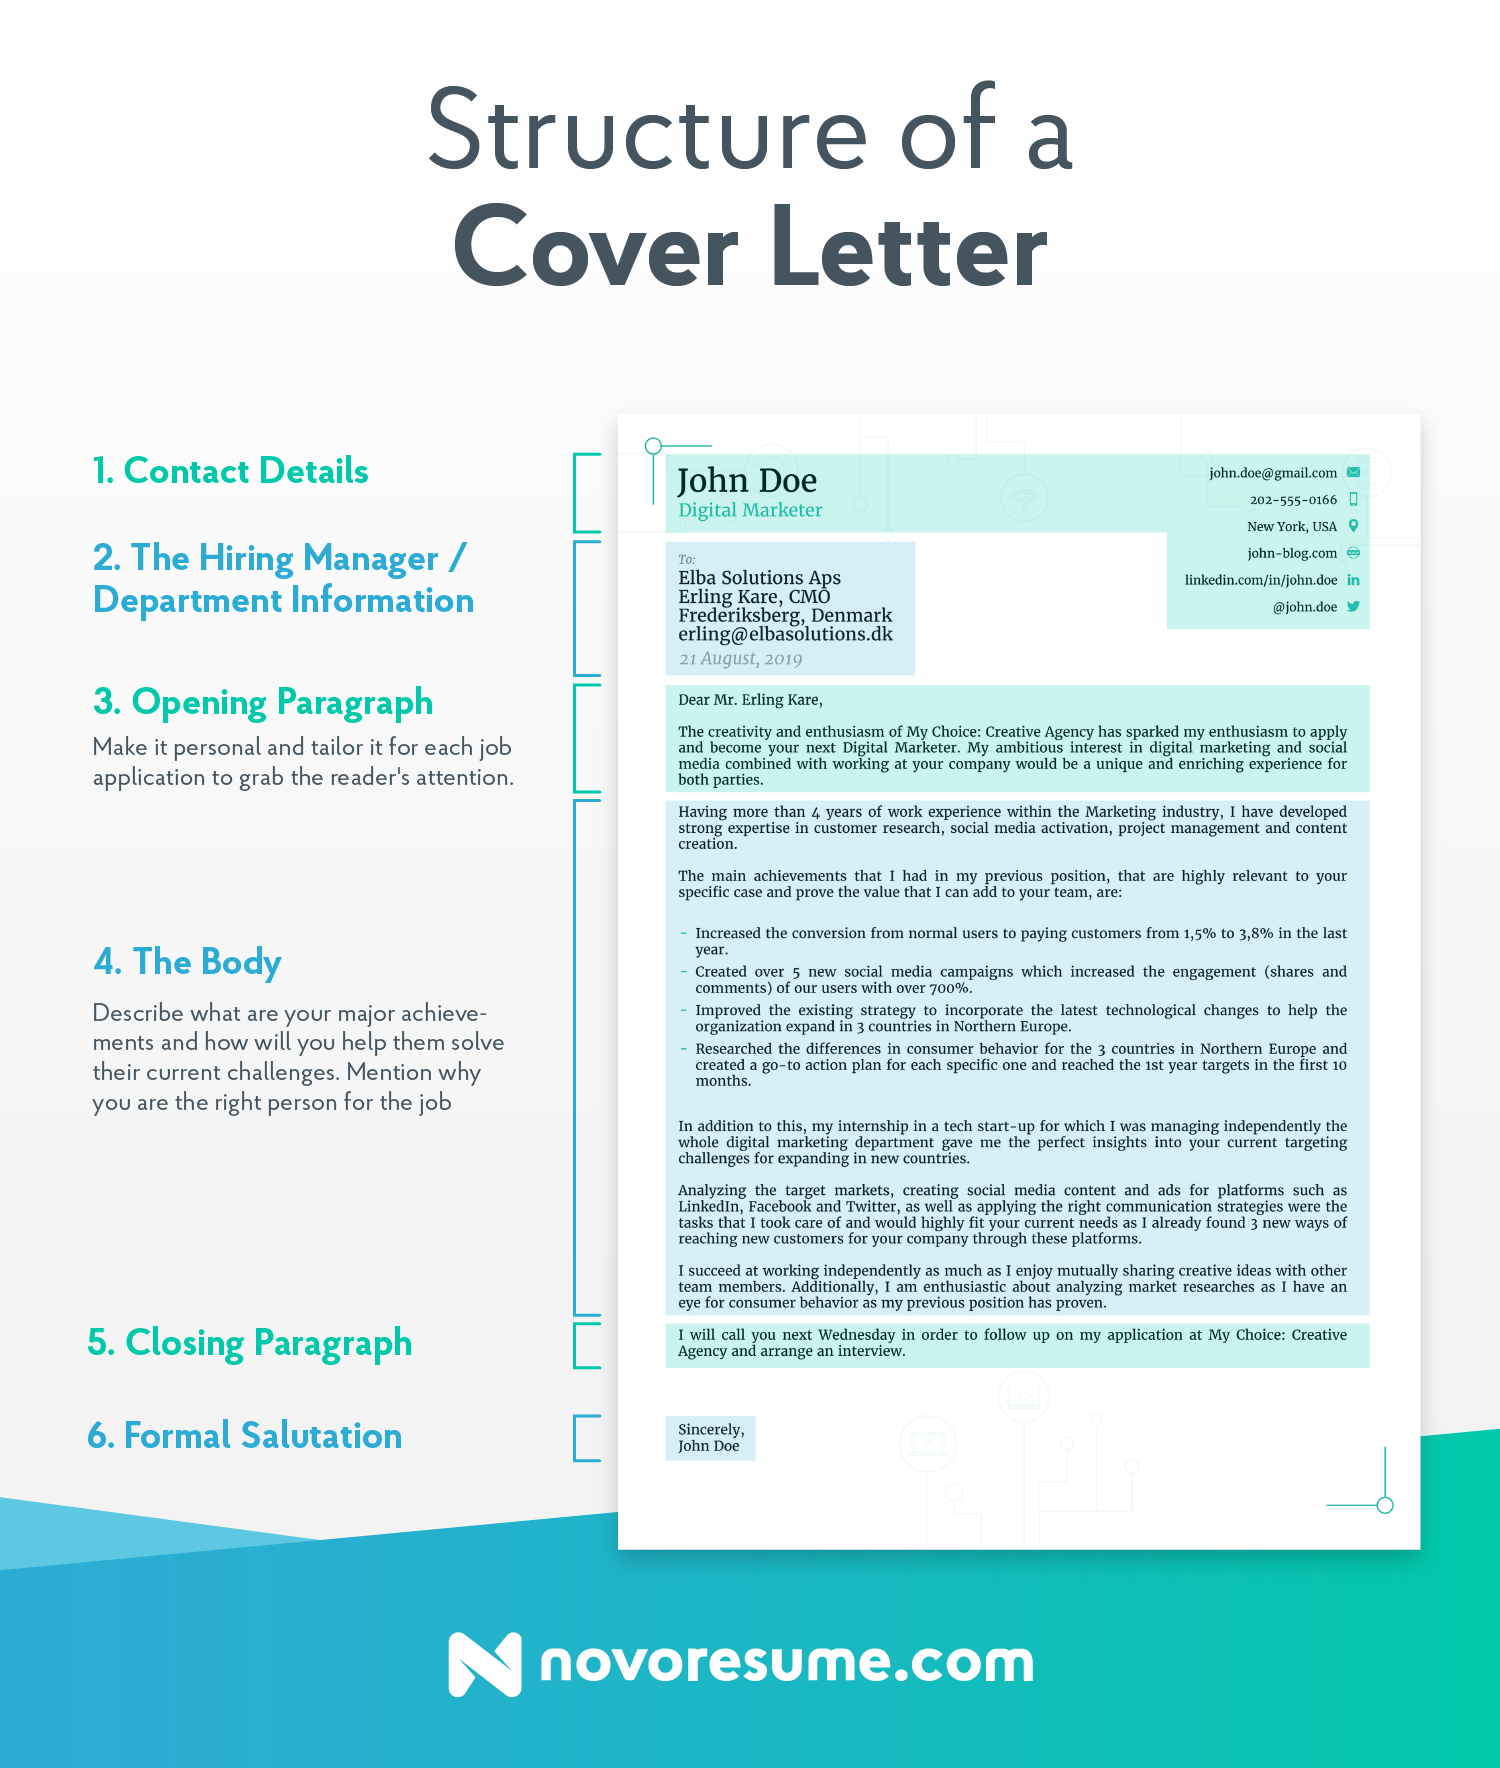 How To Write A Cover Letter In 2021 Beginner S Guide